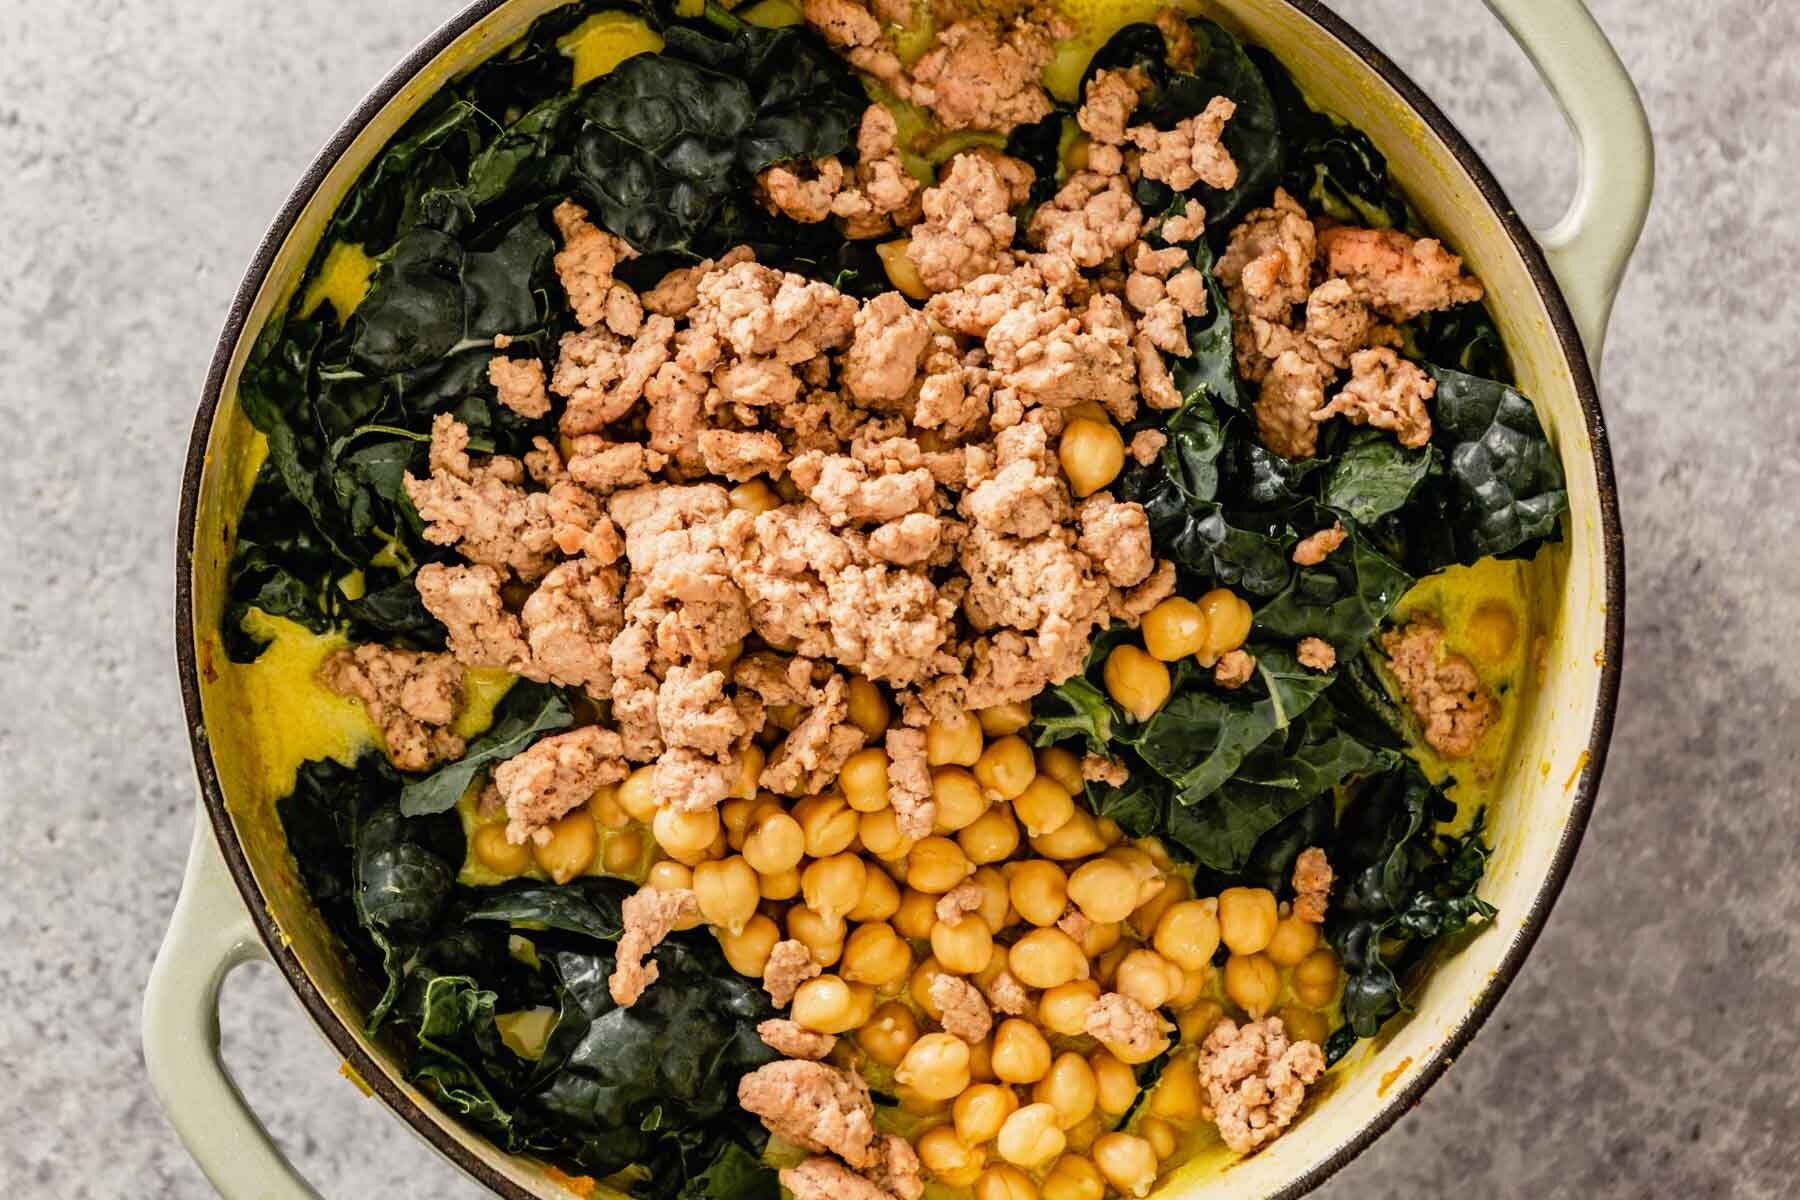 chickpeas, kale, and cooked ground pork added to a large Dutch oven